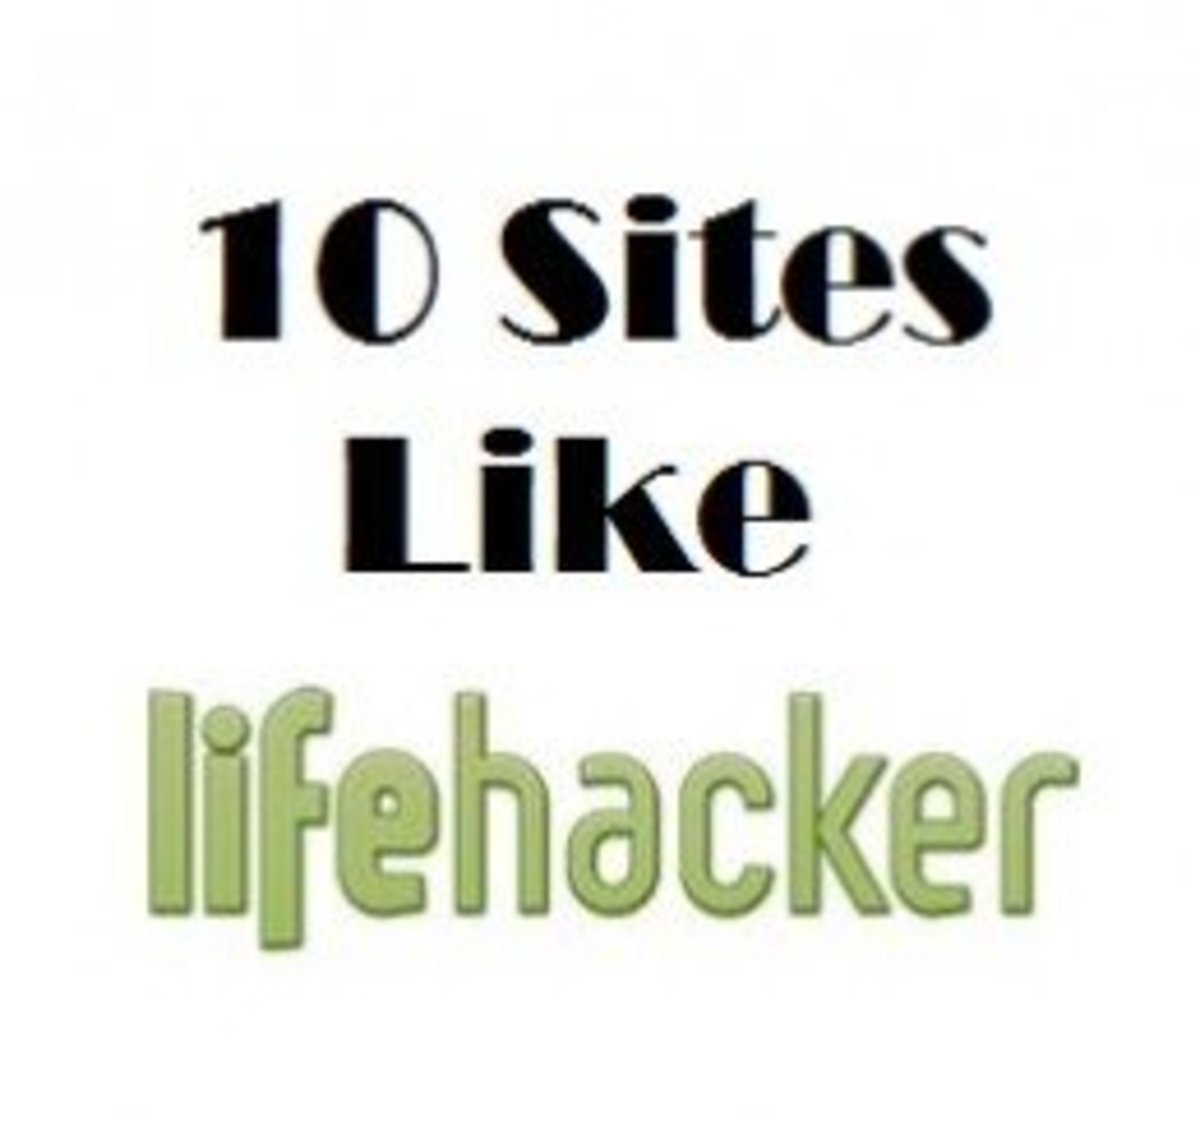 10 Sites Like Lifehacker - Websites that Make Life Convenient